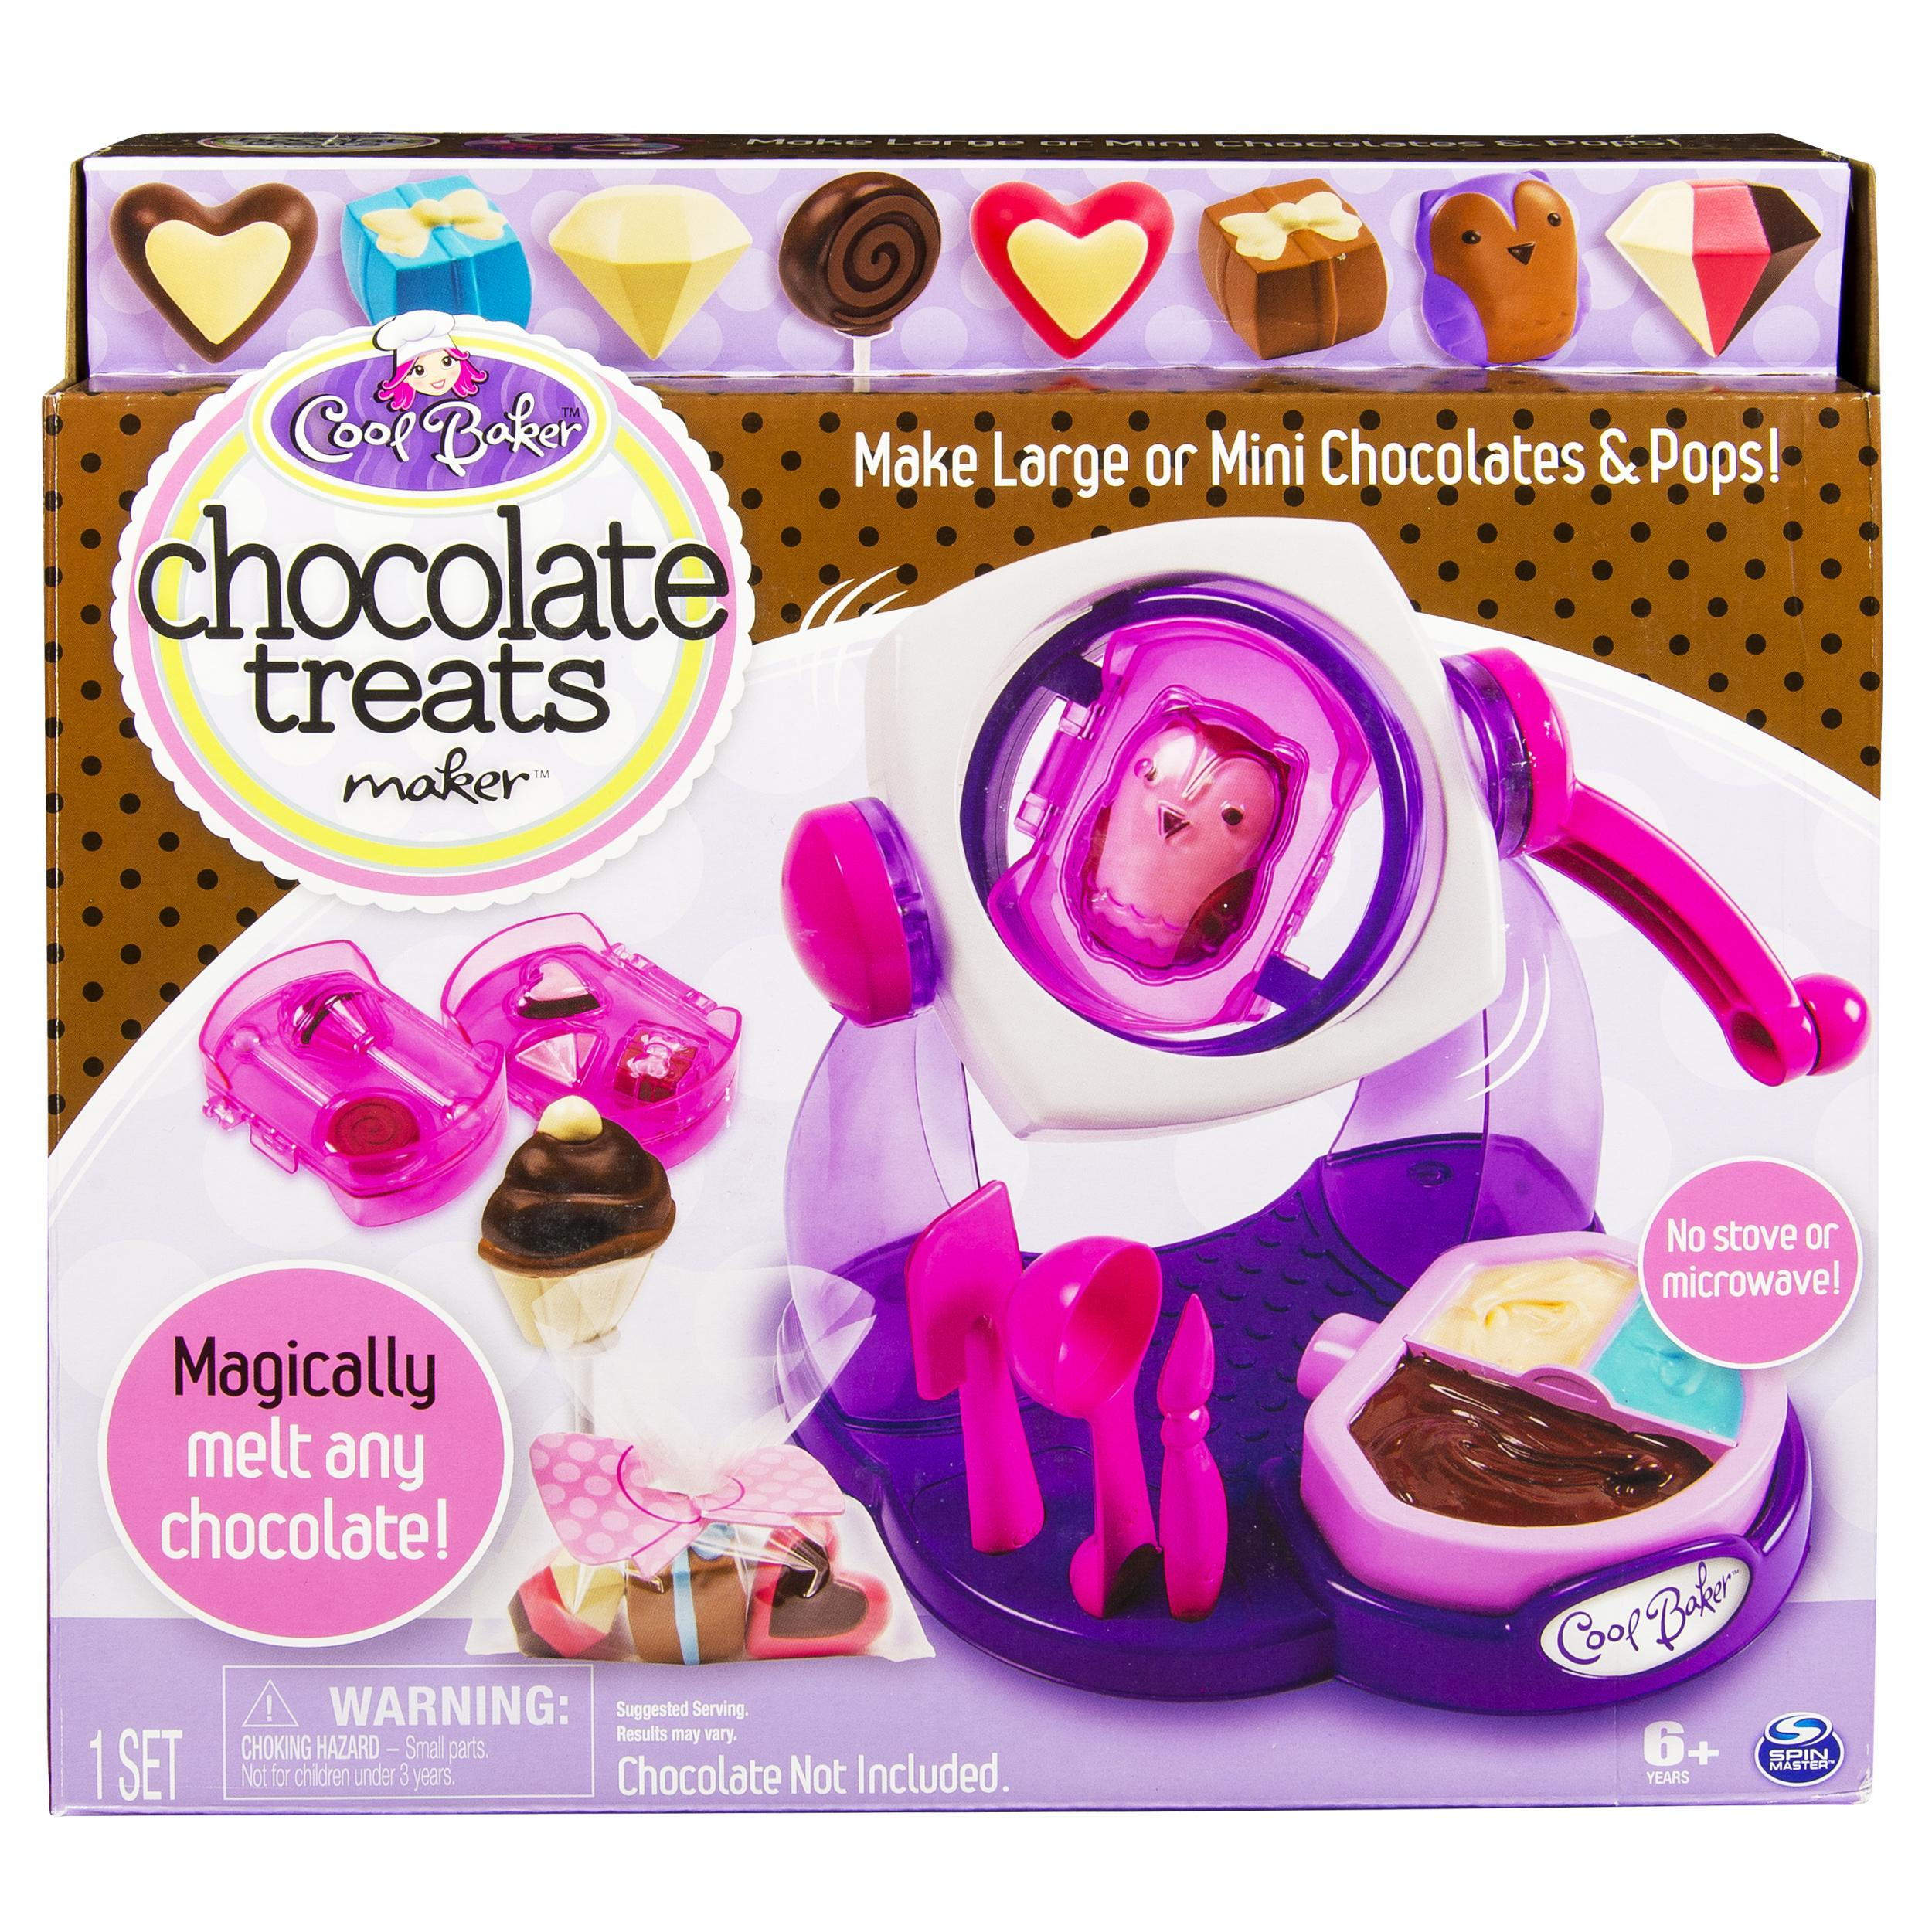 Amazon Cool Baker Chocolate Treats Maker Toys & Games